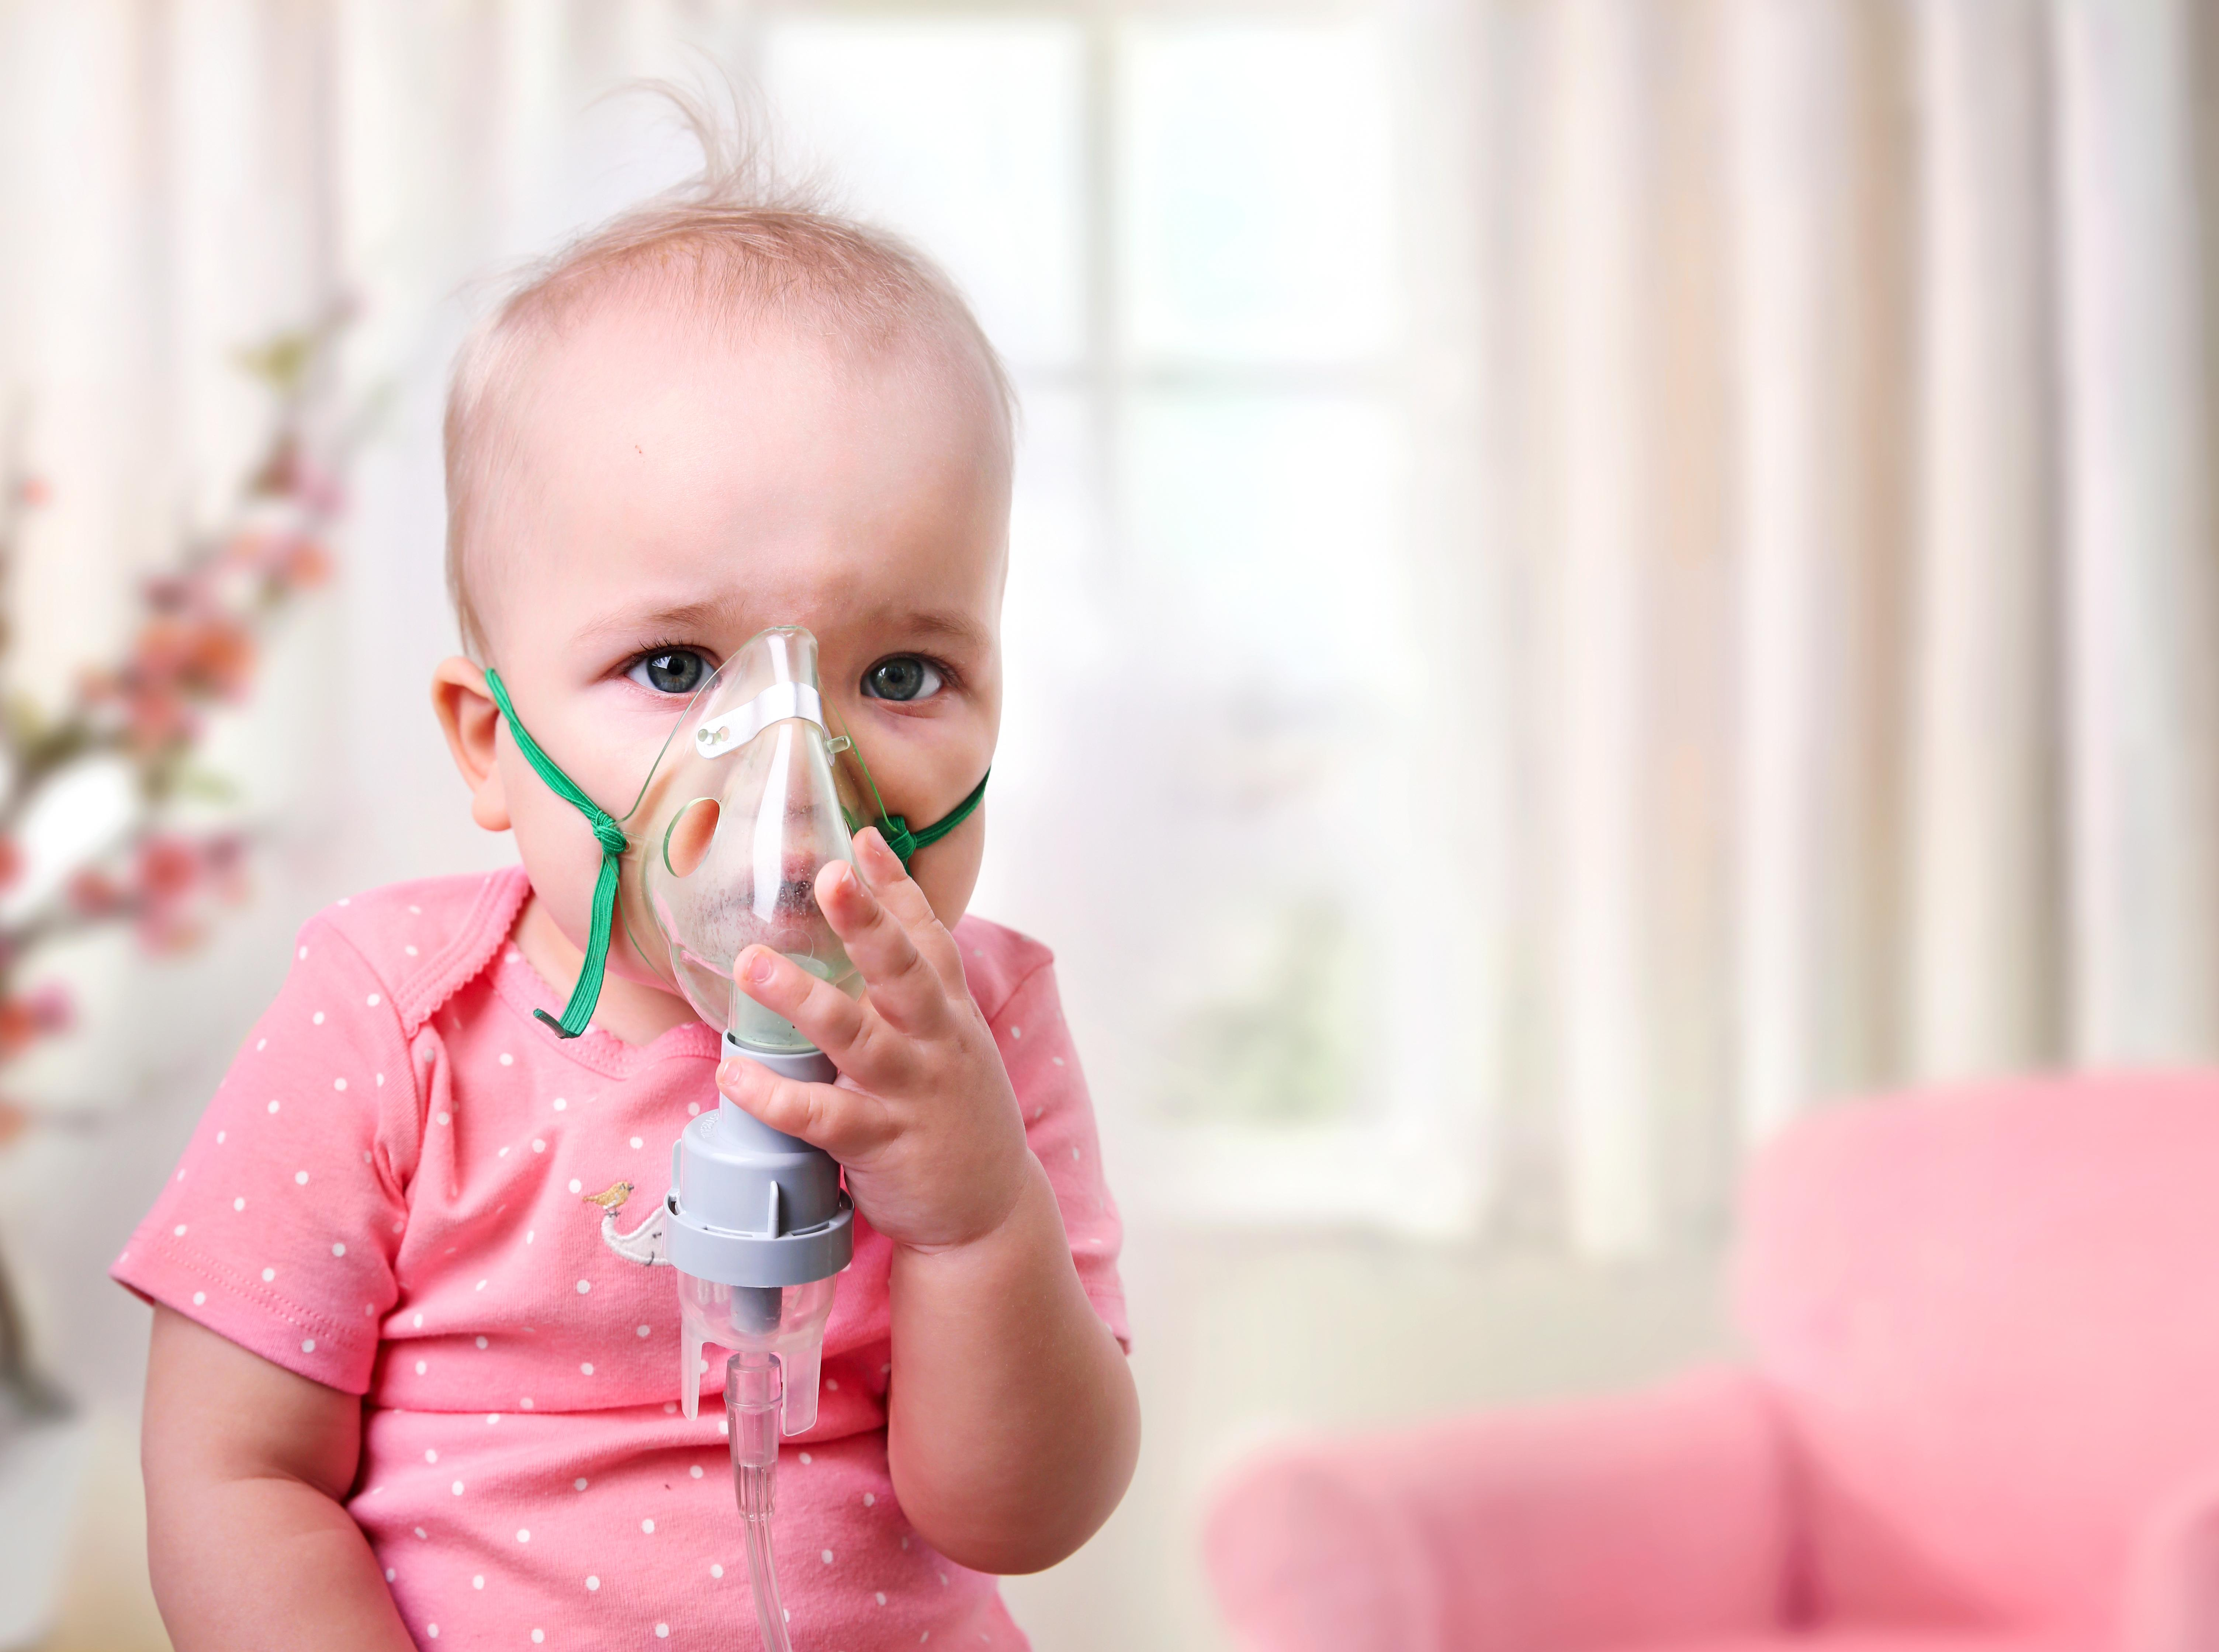 Baby with oxygen mask